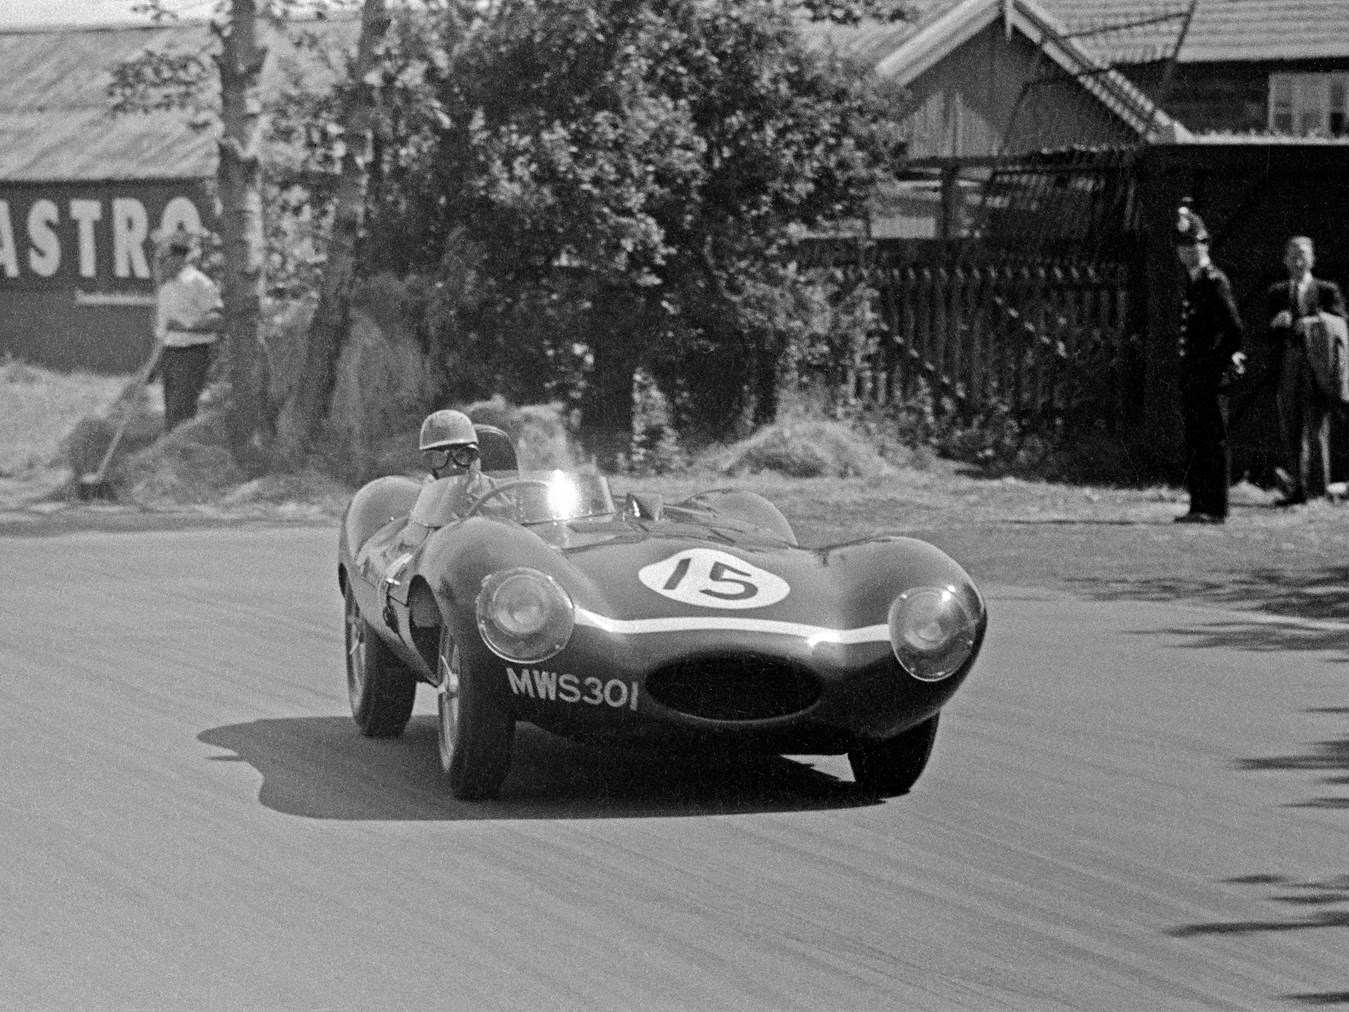 Chassis no. XKD 501 as seen at the 1955 British Grand Prix Sports Car Race.